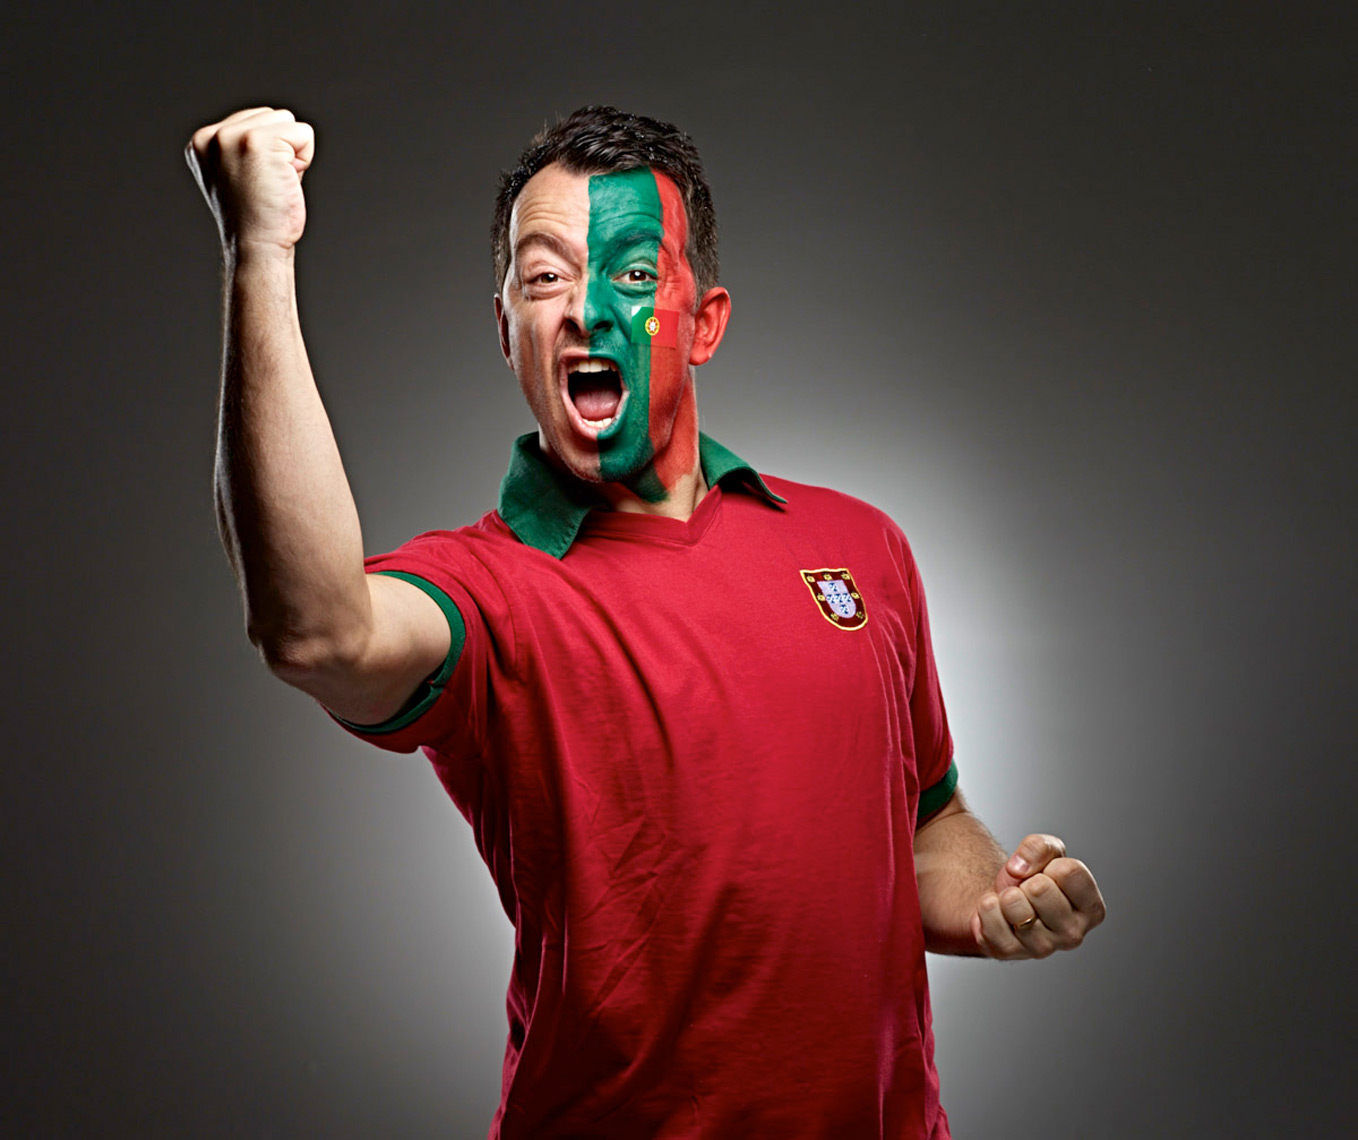 Portuguese Futbol soccer fan face paint photo by Monte Isom